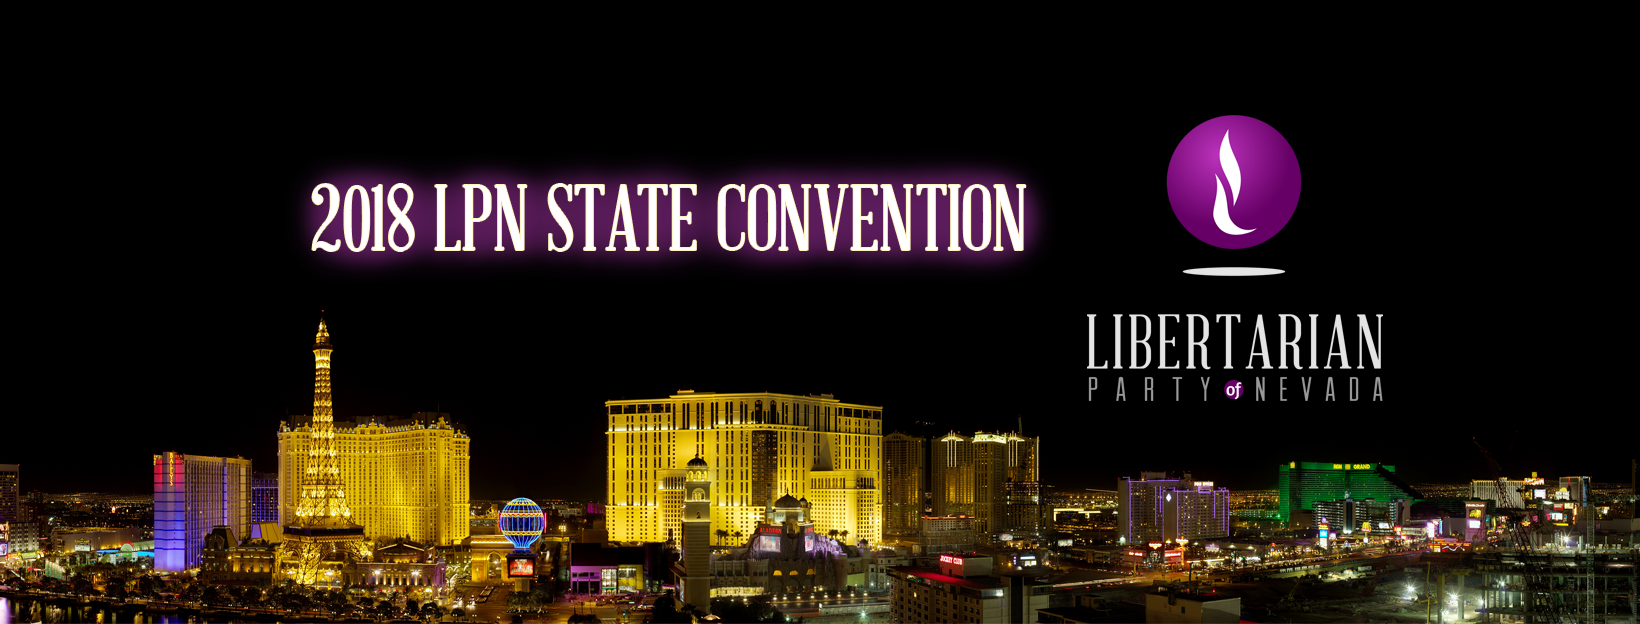 lp-nevada-convention-2018_(1).png